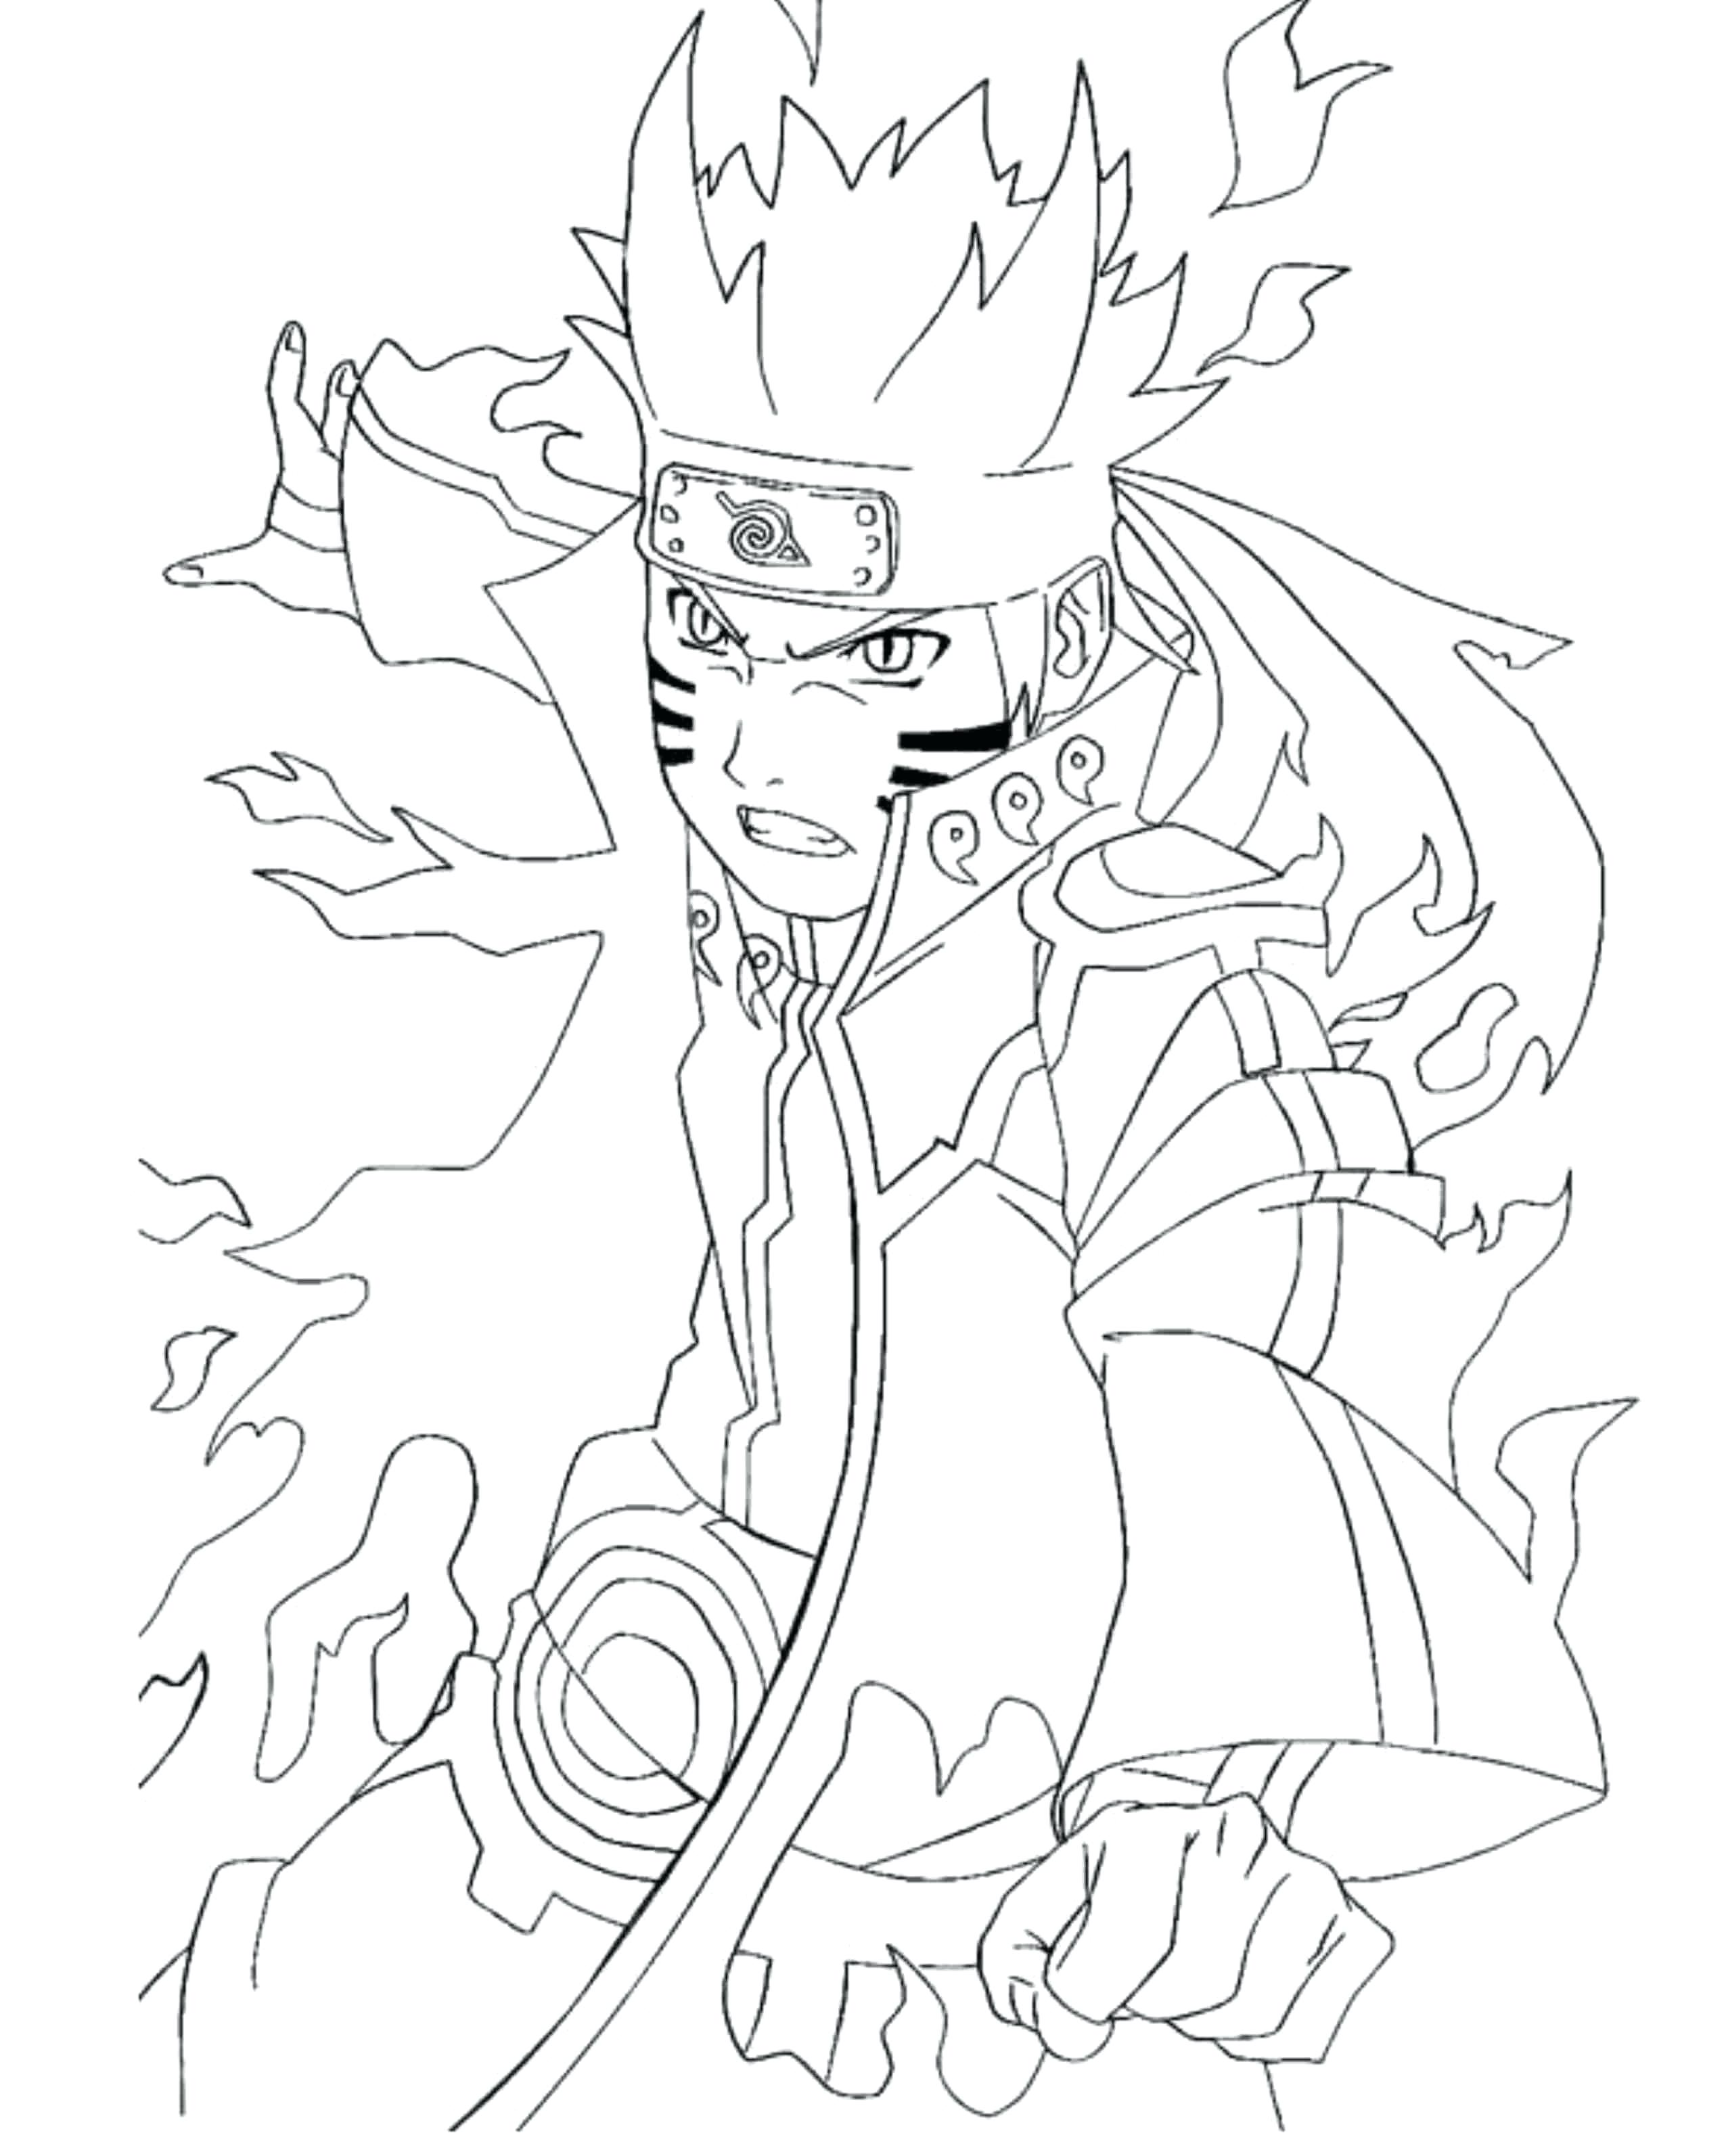 It is a photo of Intrepid naruto and sasuke coloring pages